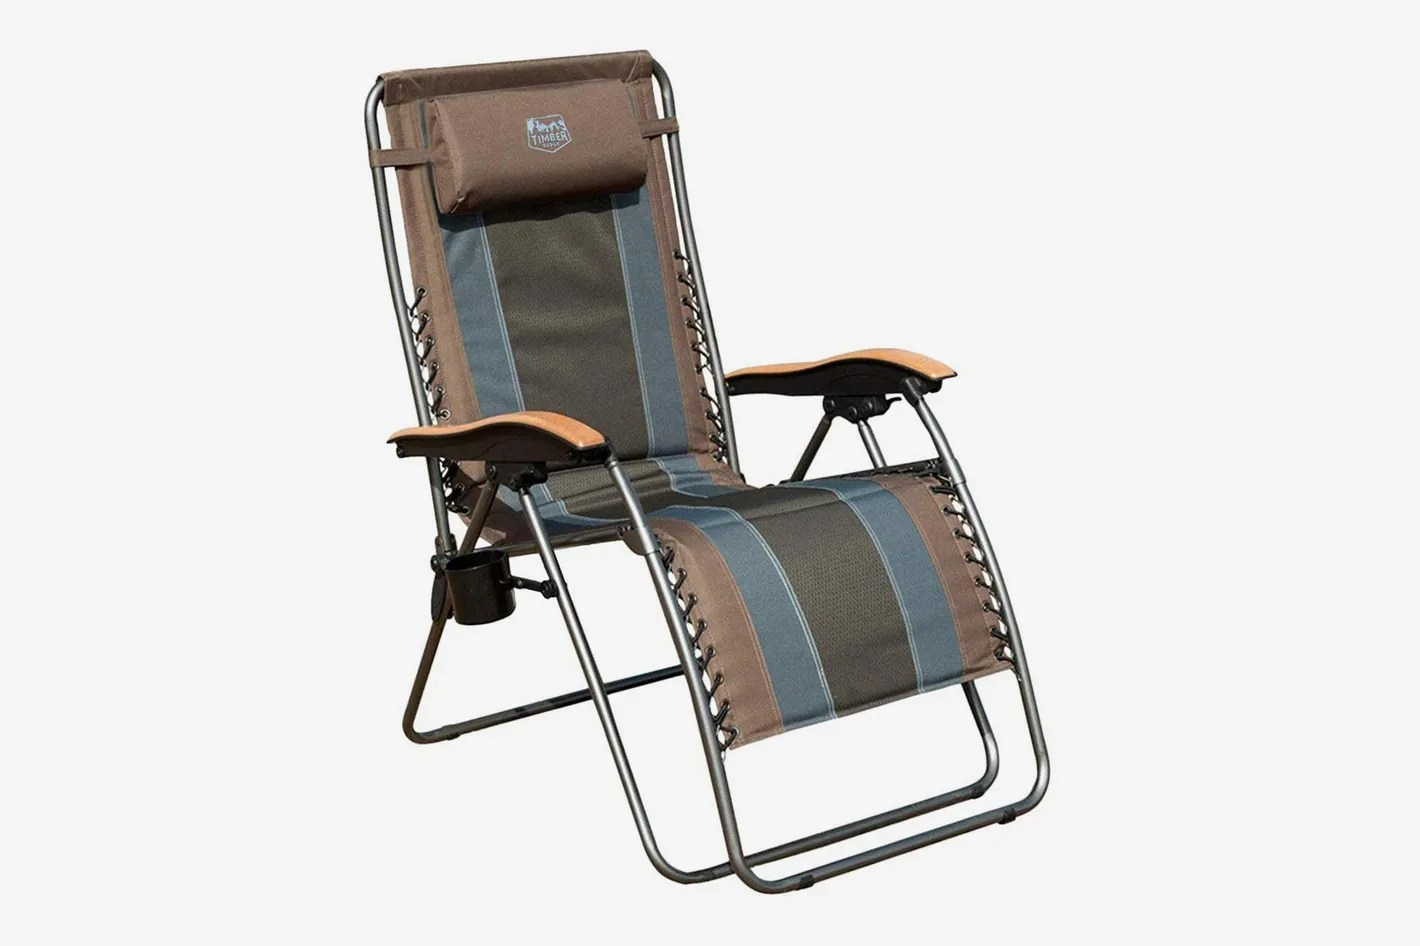 Most Comfortable Camping Chair 12 Best Lawn Chairs To Buy 2019